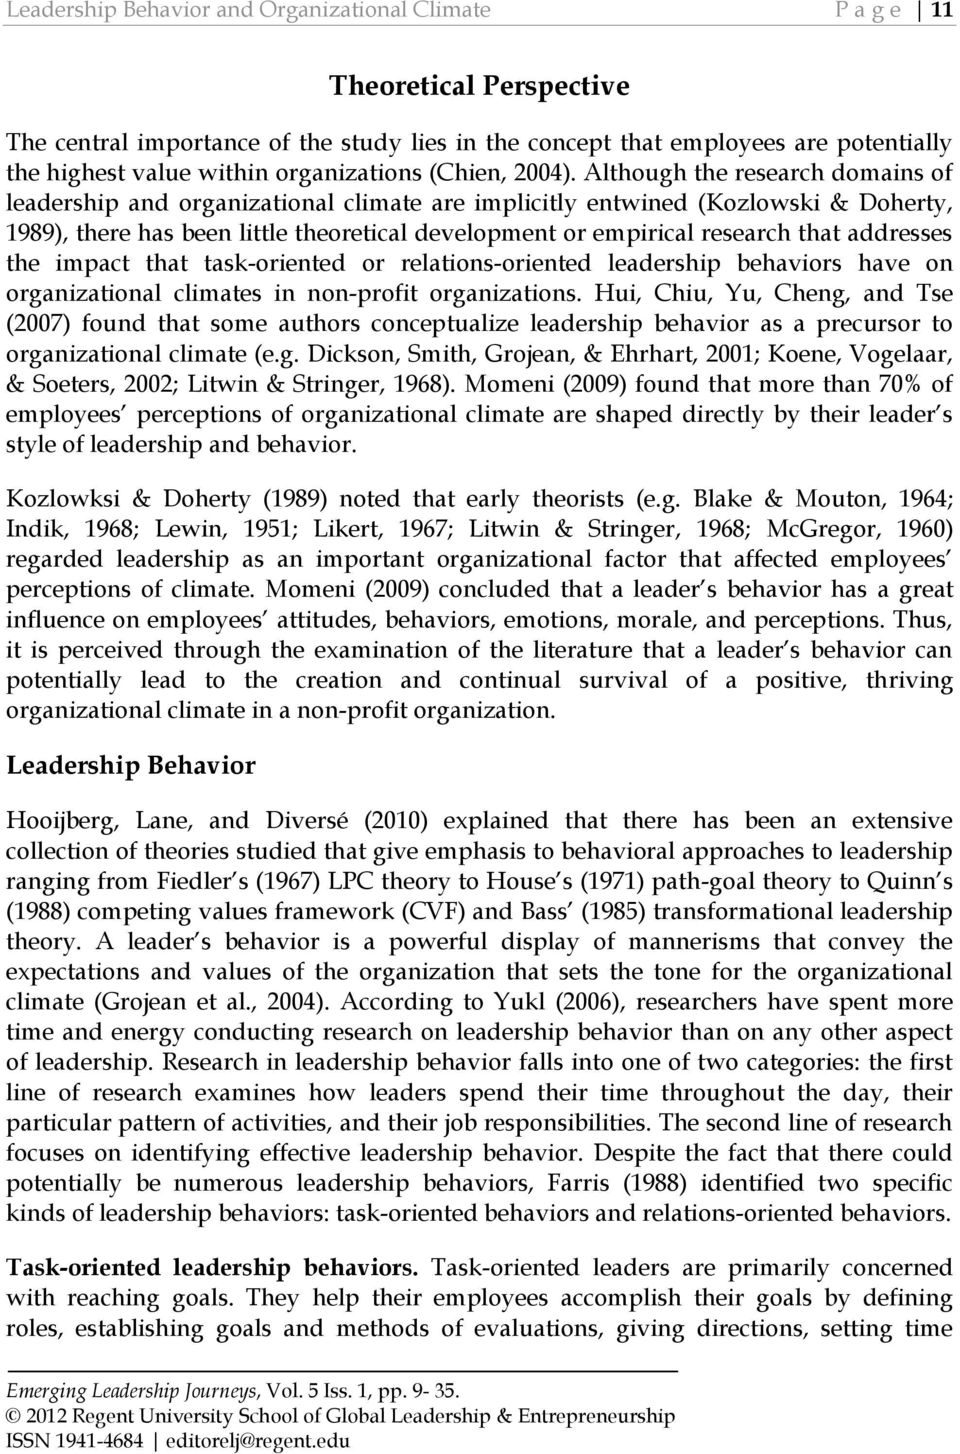 Although the research domains of leadership and organizational climate are implicitly entwined (Kozlowski & Doherty, 1989), there has been little theoretical development or empirical research that